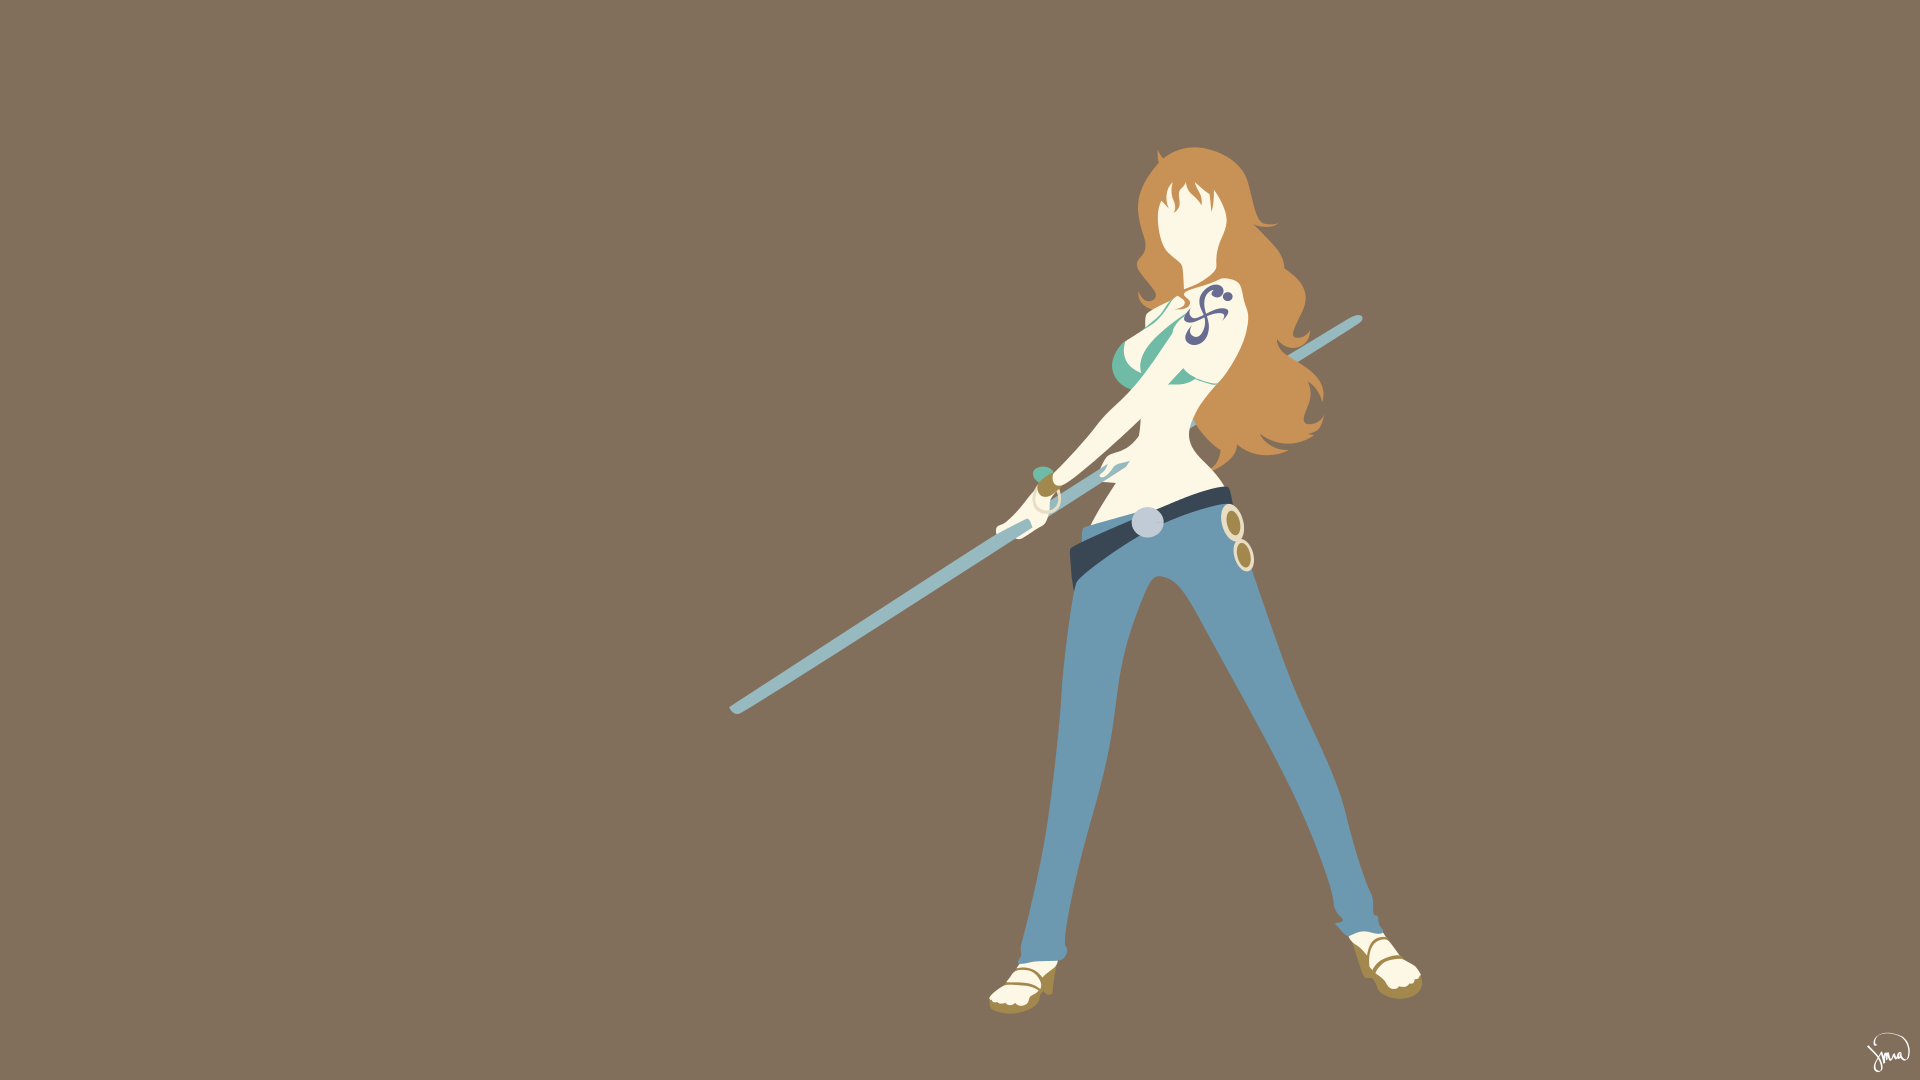 nami one piece wallpaper by greenmapple17 daily anime art